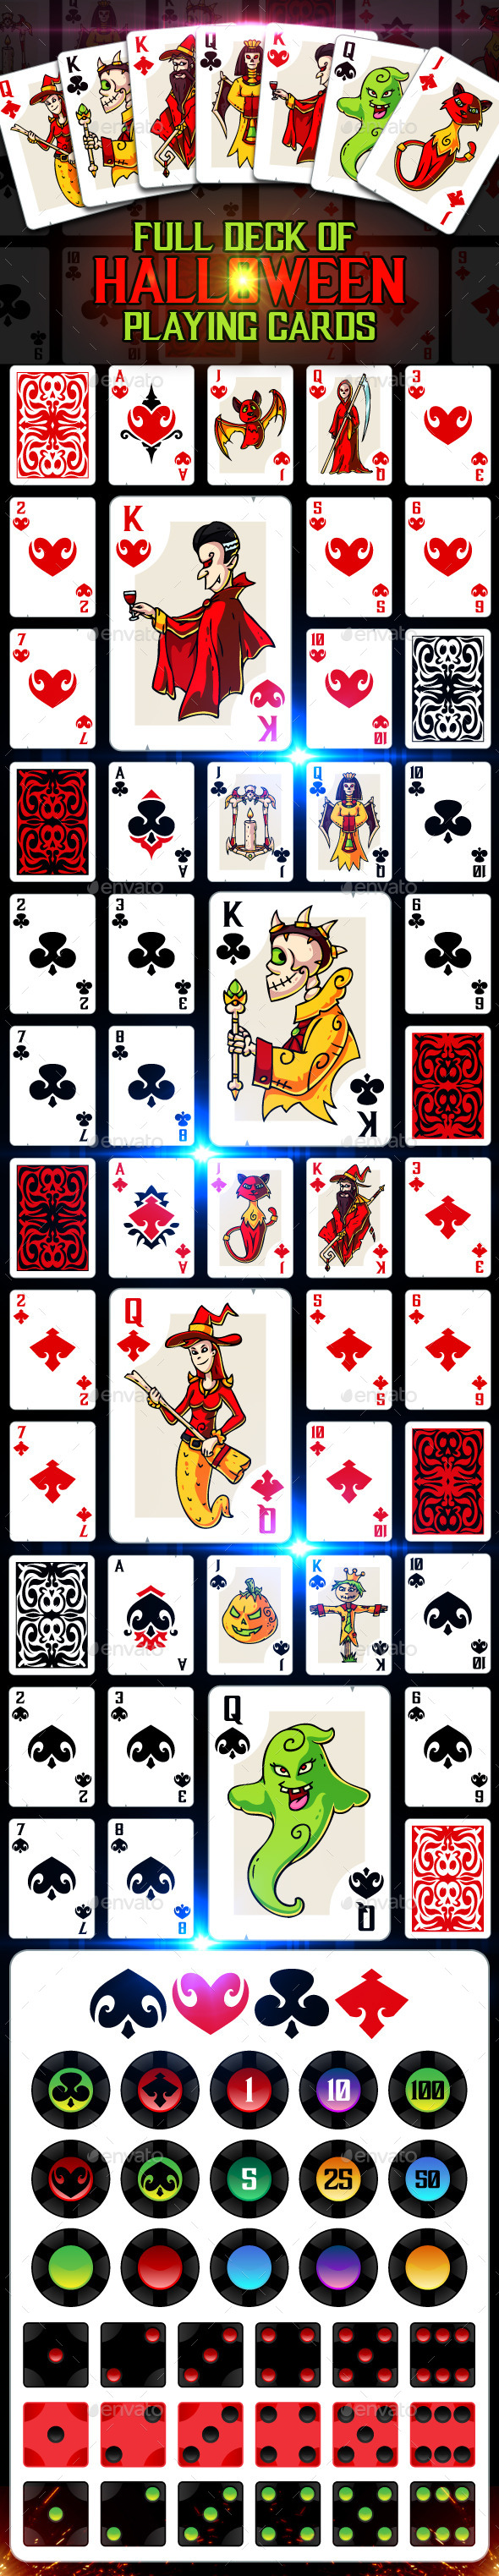 Full Deck of Halloween Playing Cards - Miscellaneous Game Assets